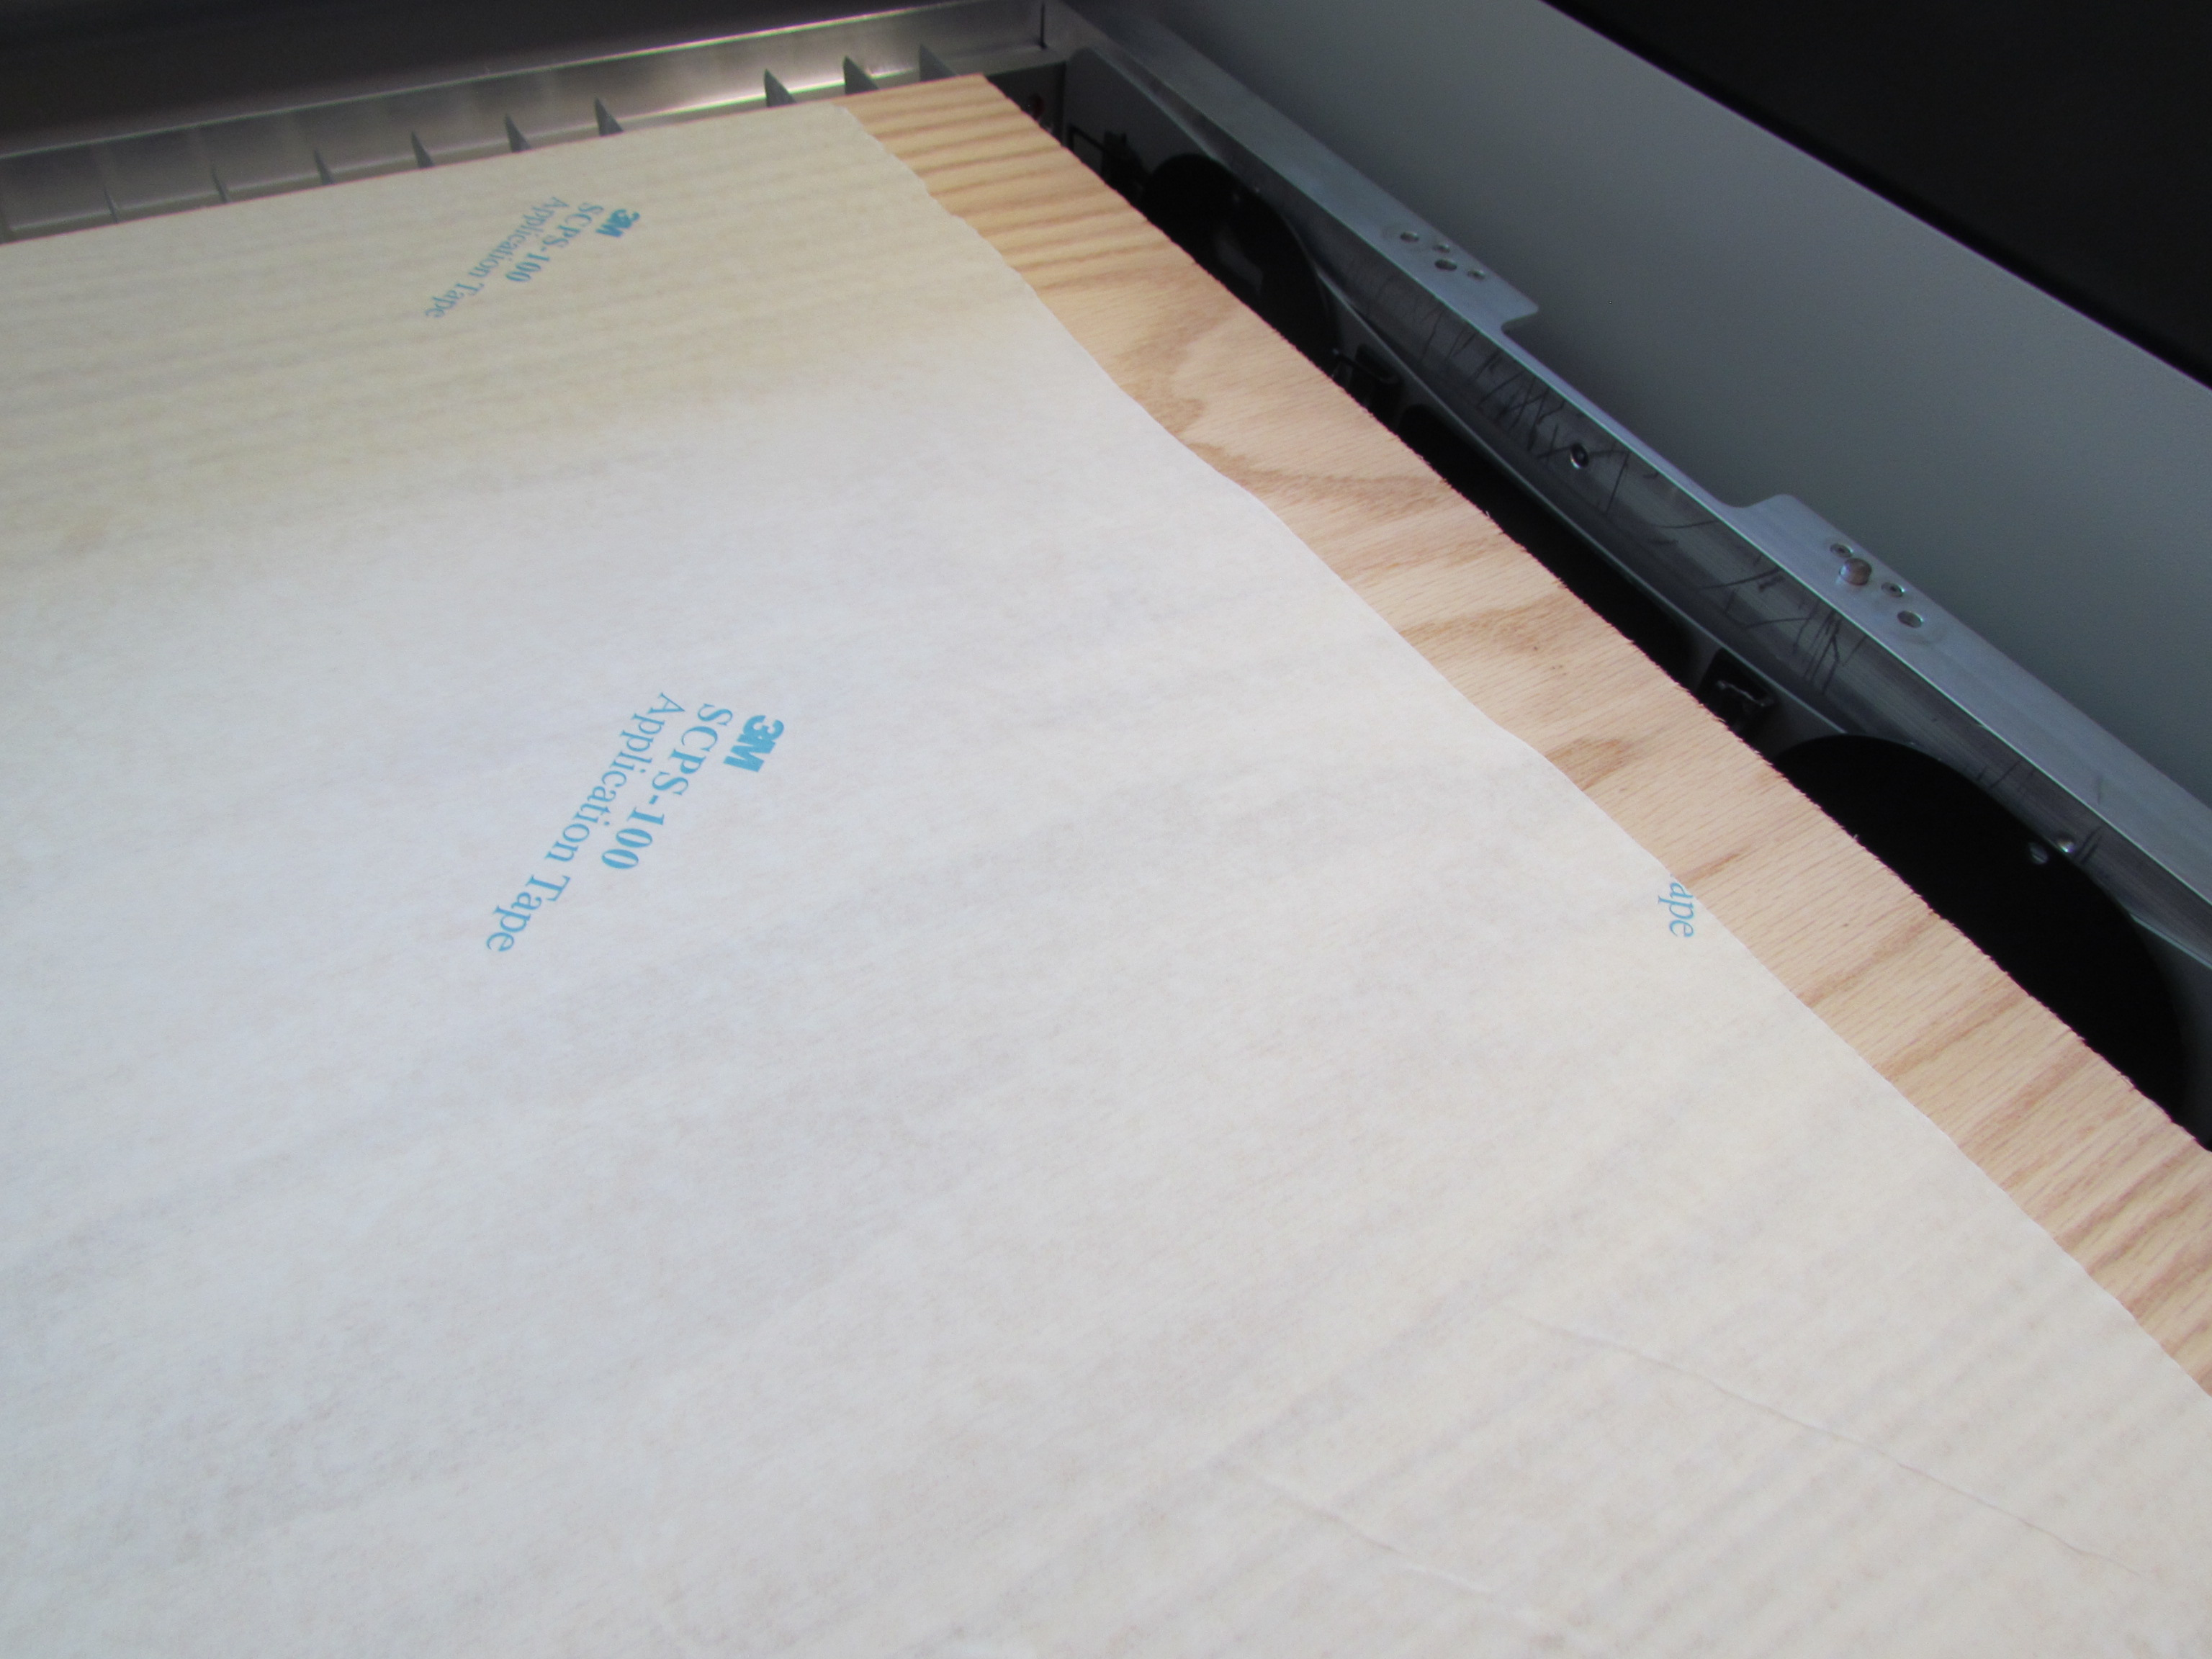 Picture of Laser Engraving and Cutting the Boards